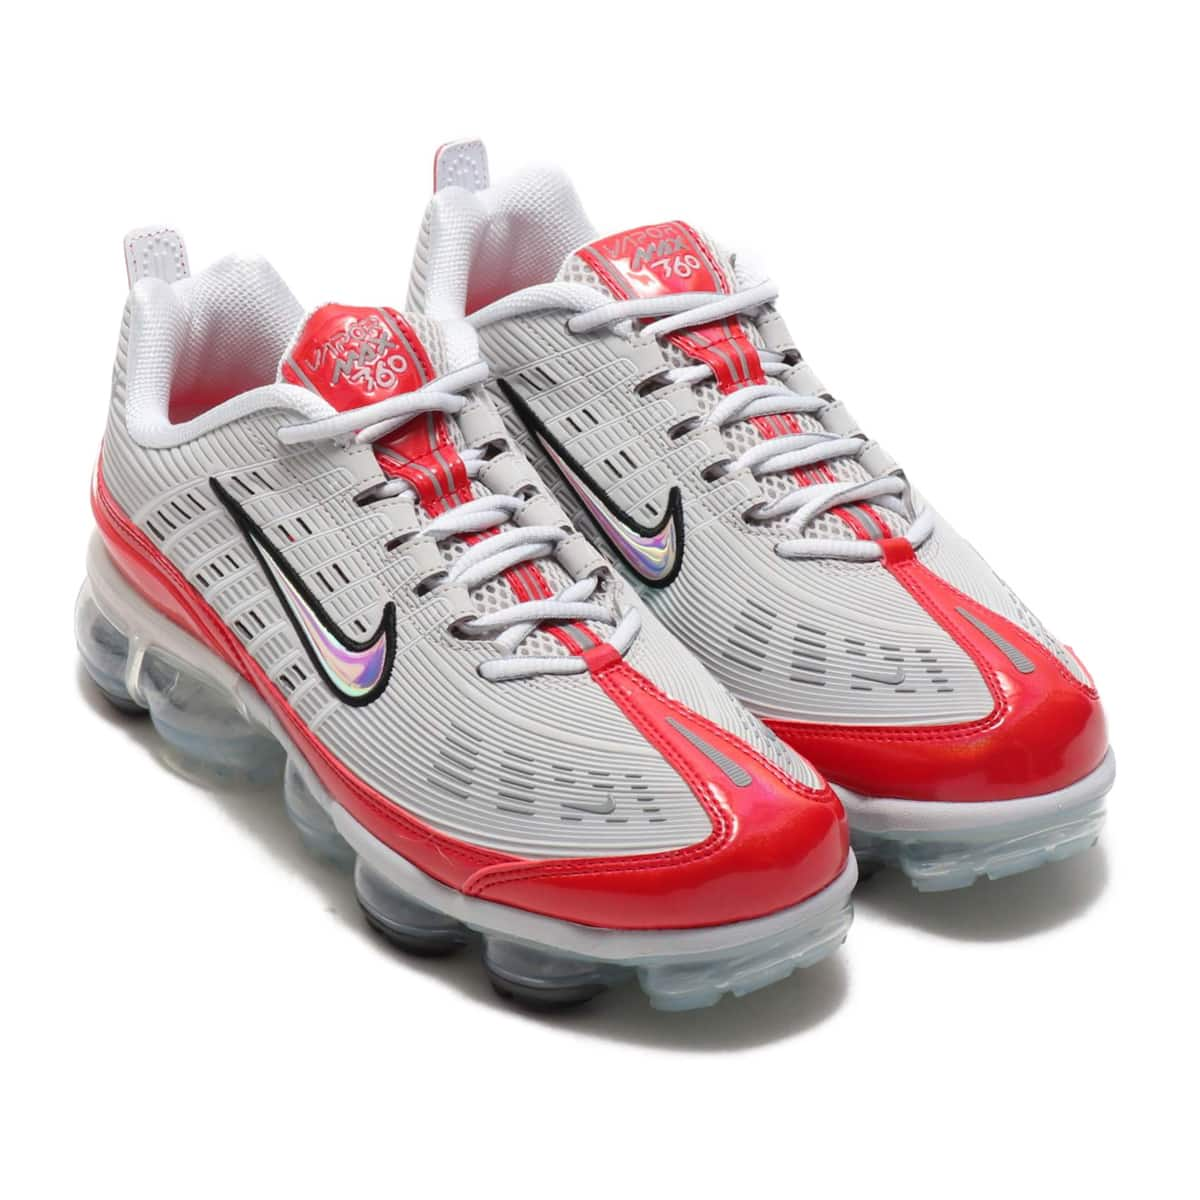 NIKE AIR VAPORMAX 360 VAST GREY/WHITE-PARTICLE GREY 20SP-S_photo_large